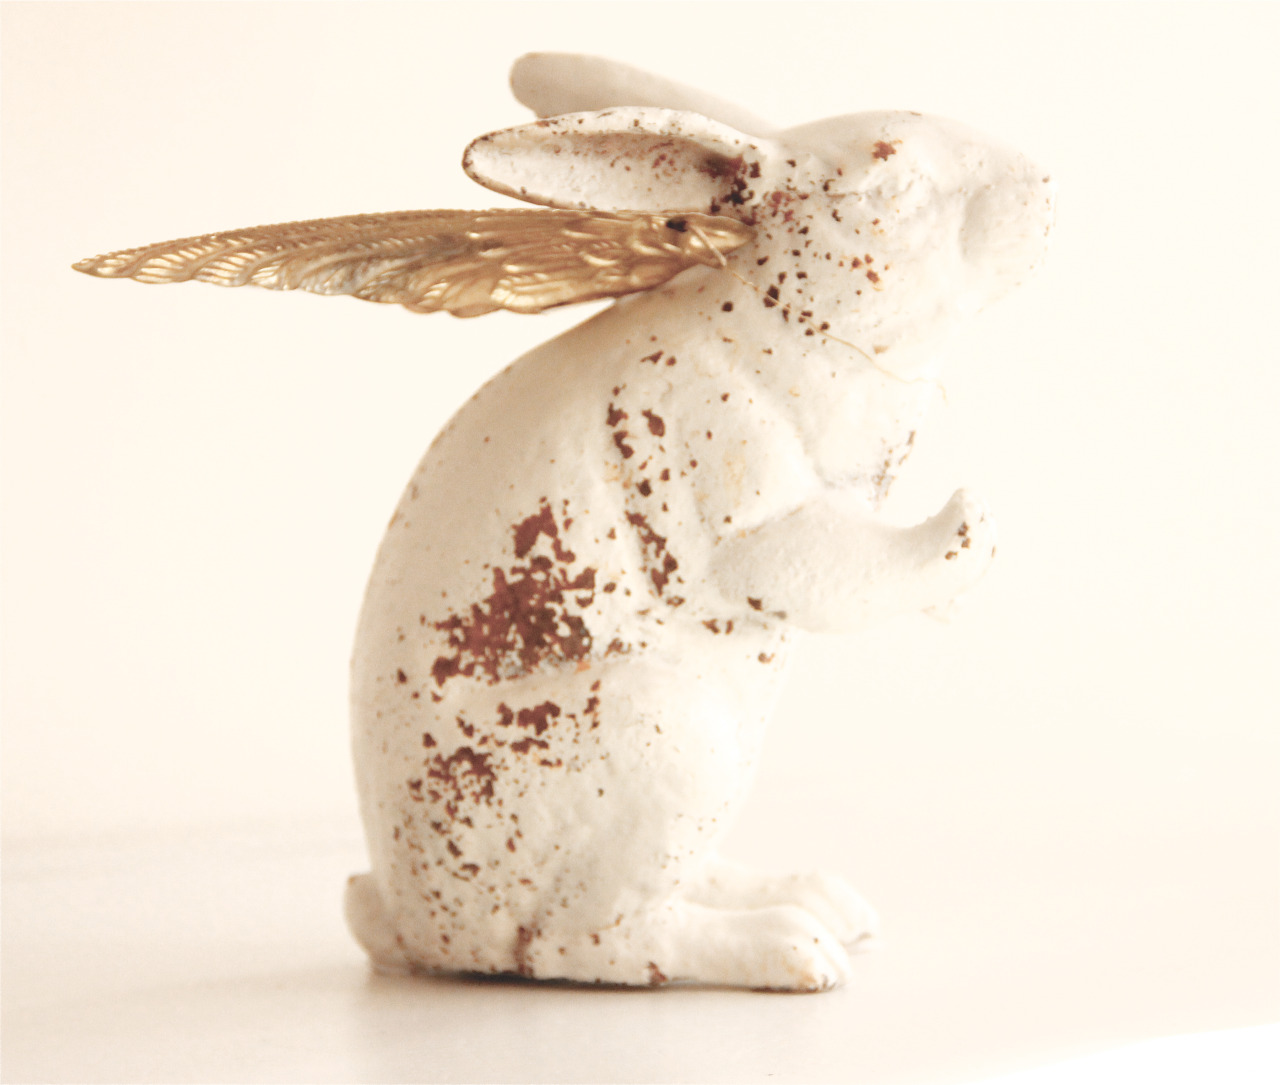 My hare has golden wings